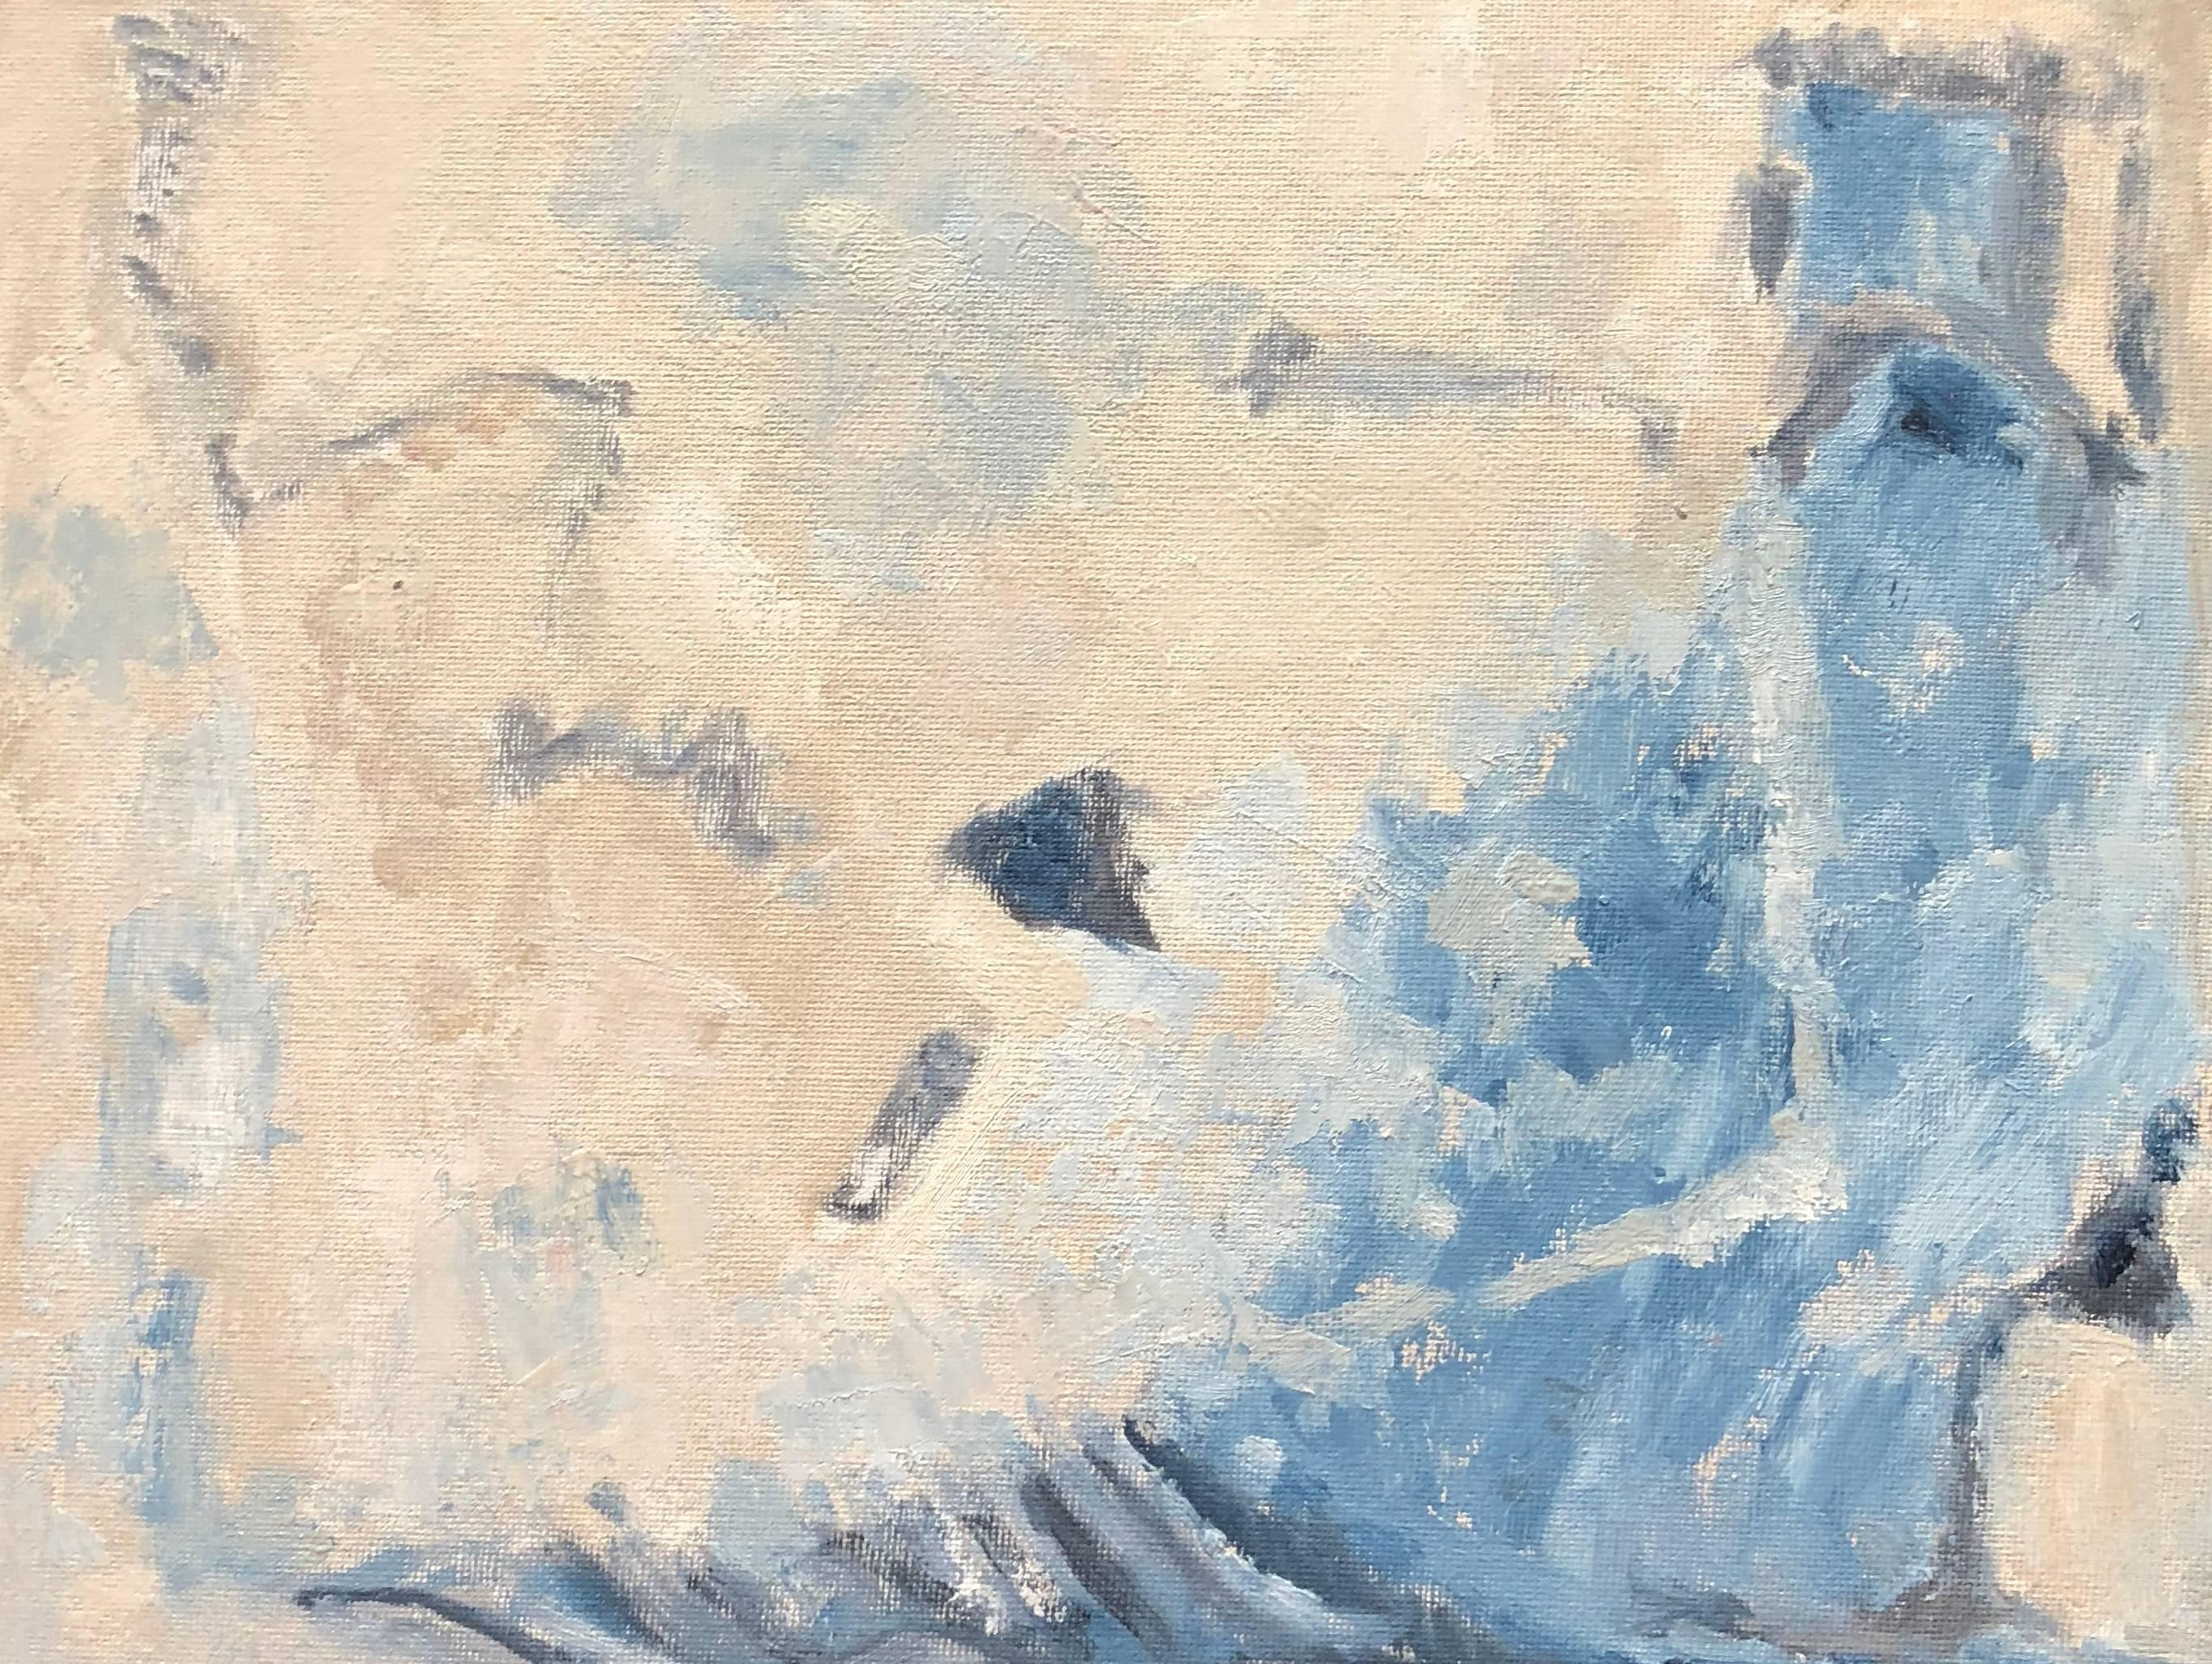 Blues & Whites French Expressionist Abstract Oil Painting